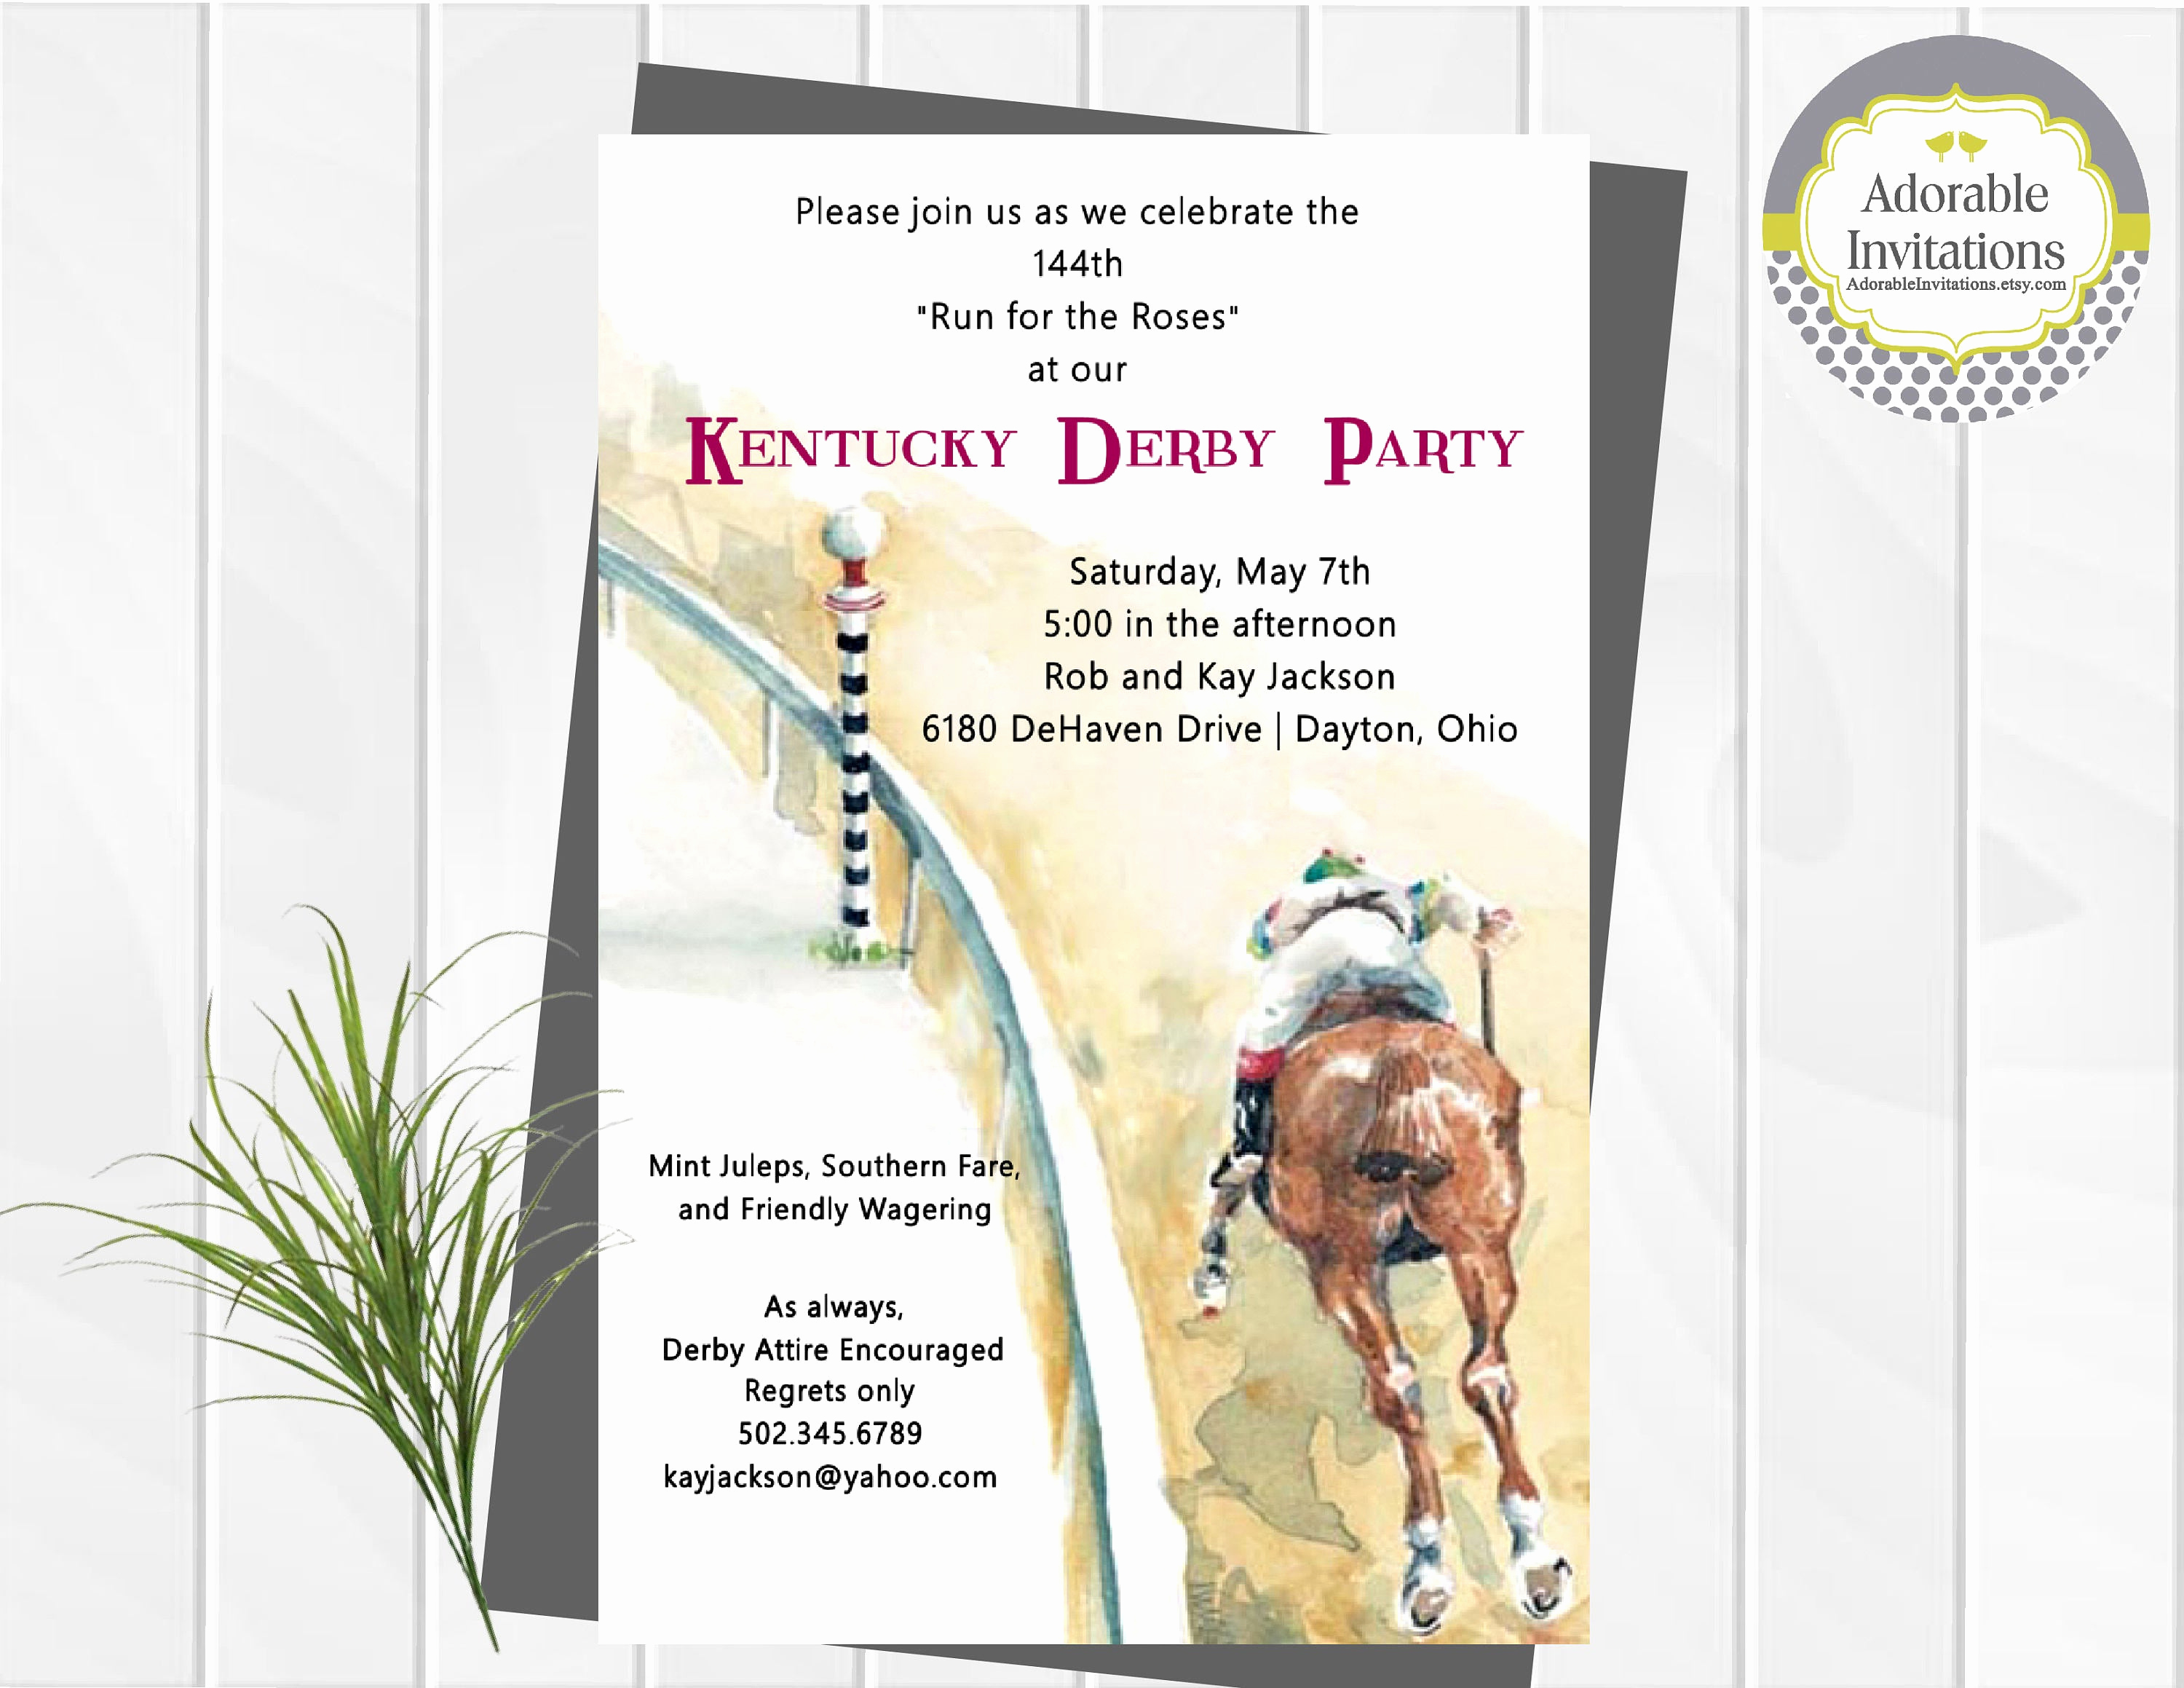 Kentucky Derby Party Invitation Wording Fresh Kentucky Derby Party Invitation Run for the Roses